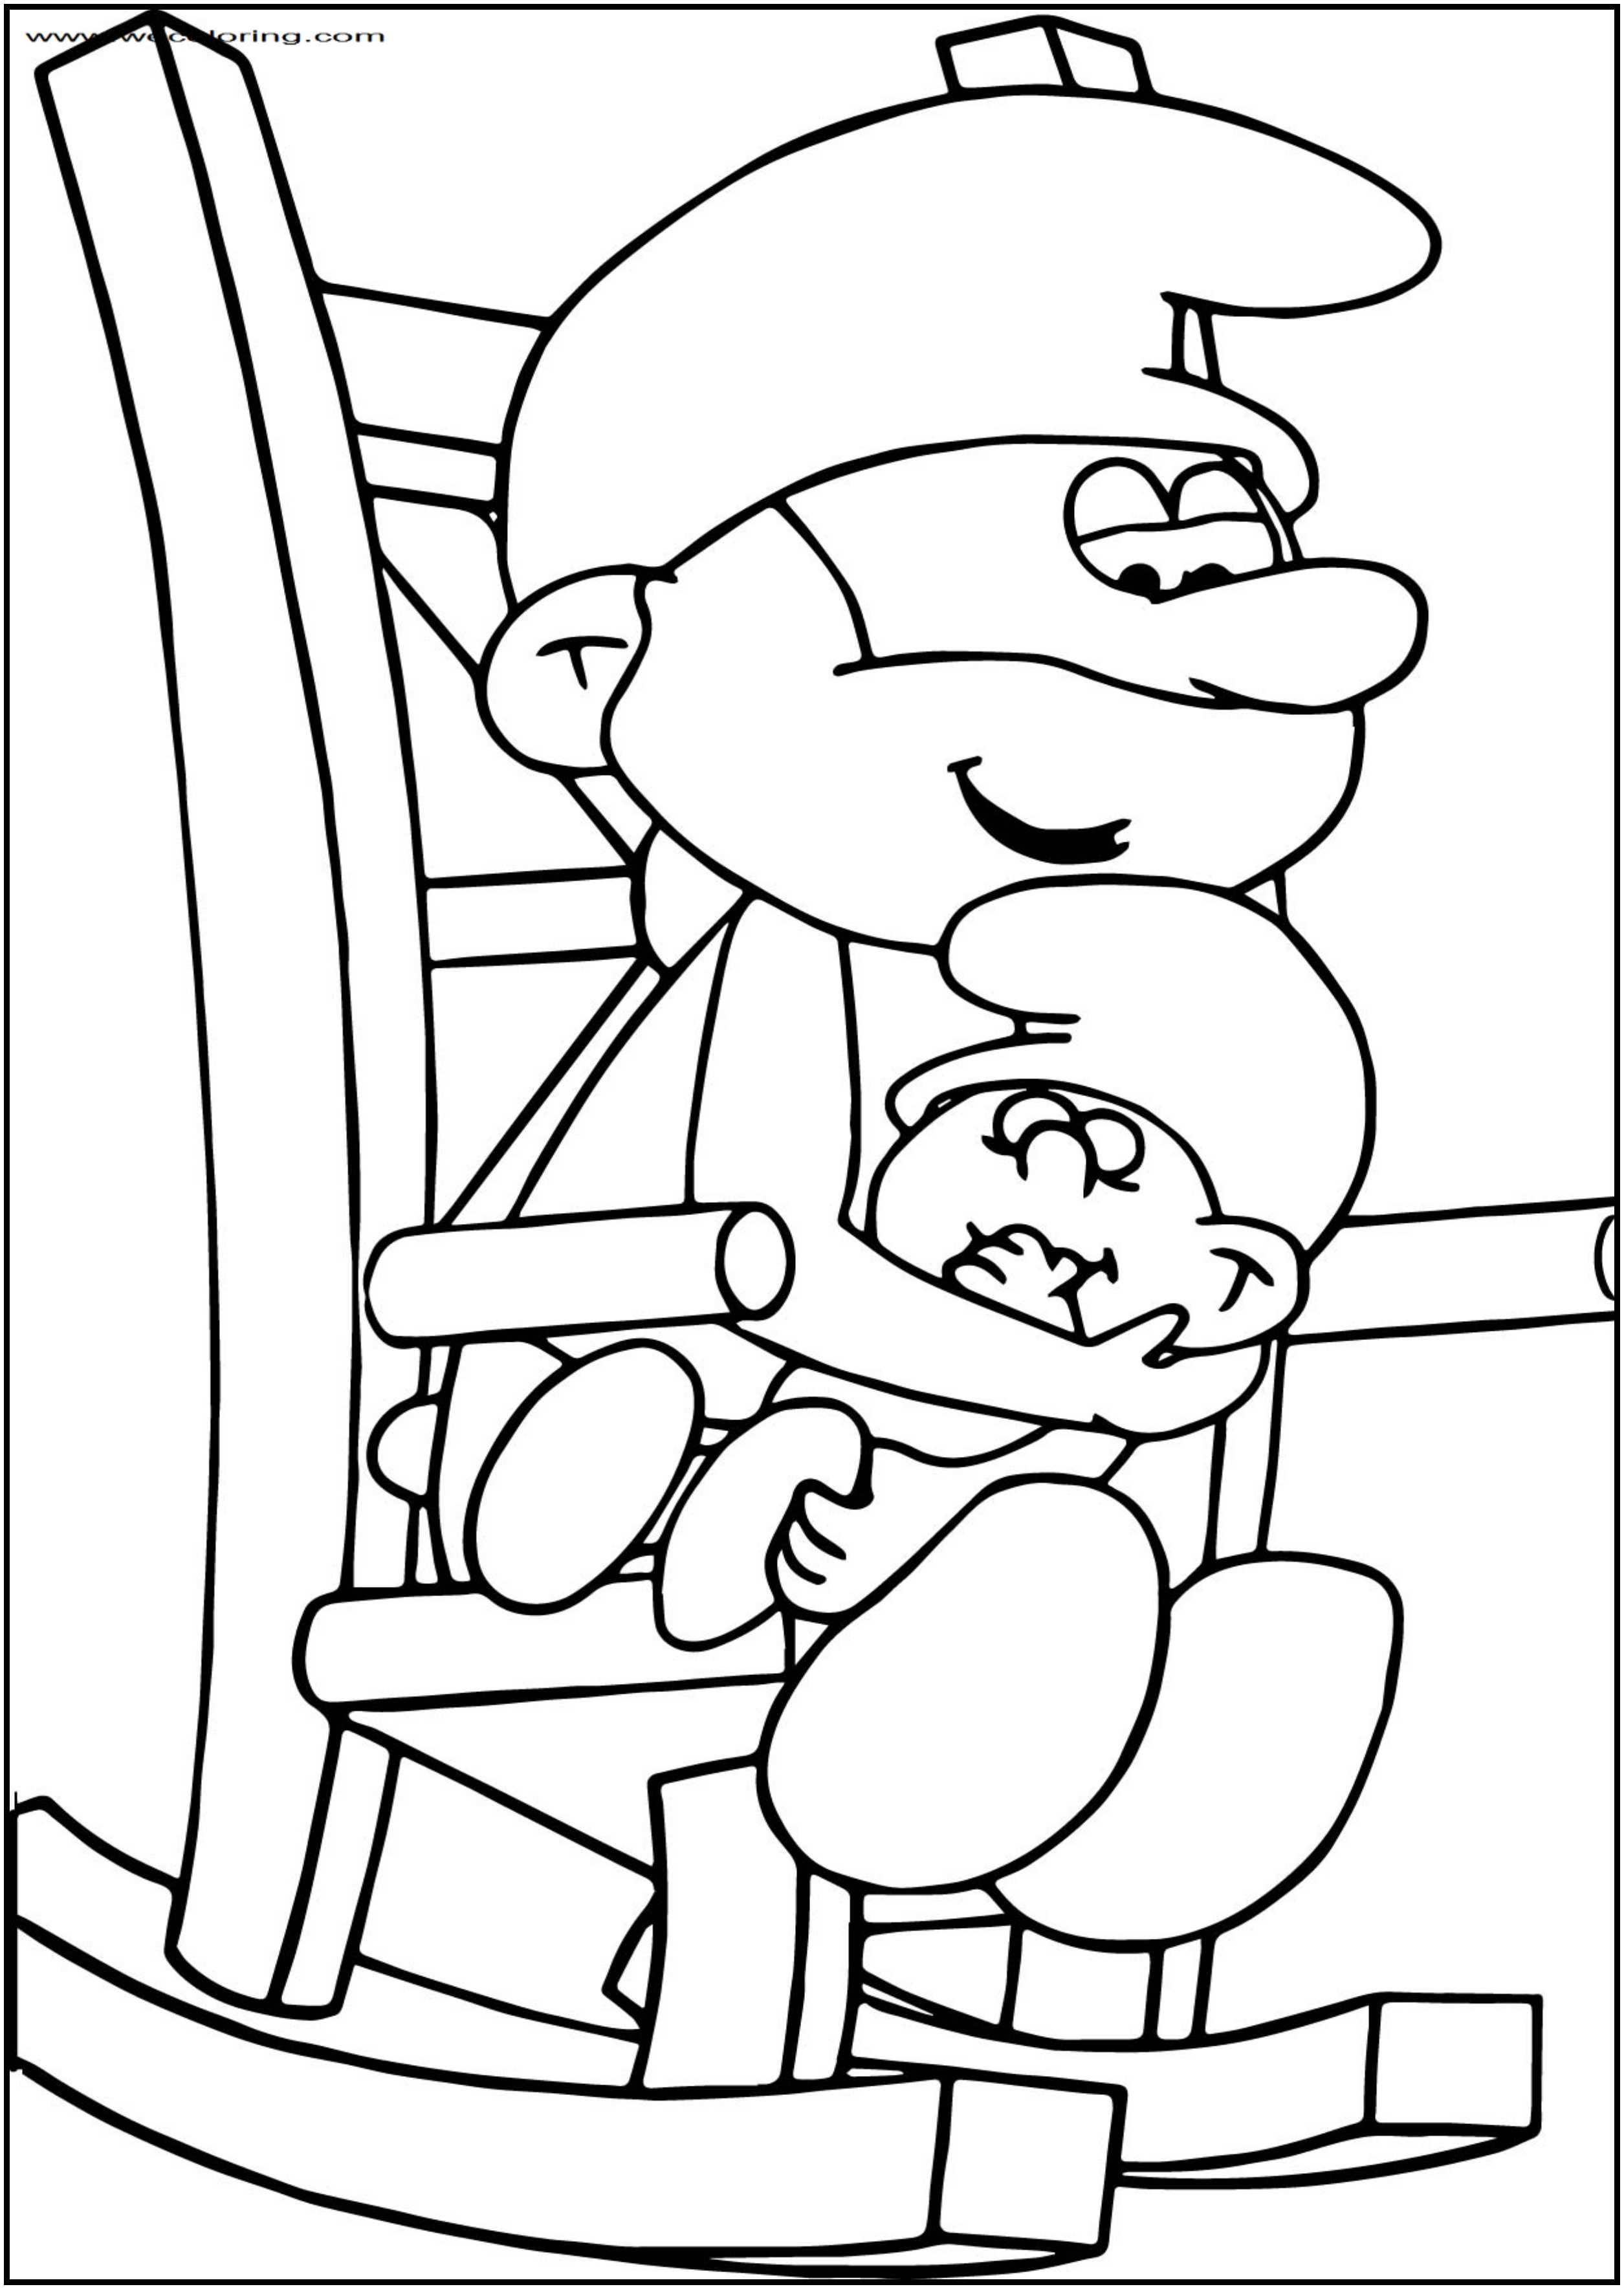 Papa Smurf And Ba Smurf Super Schtroumpf Free Printable Coloring Page